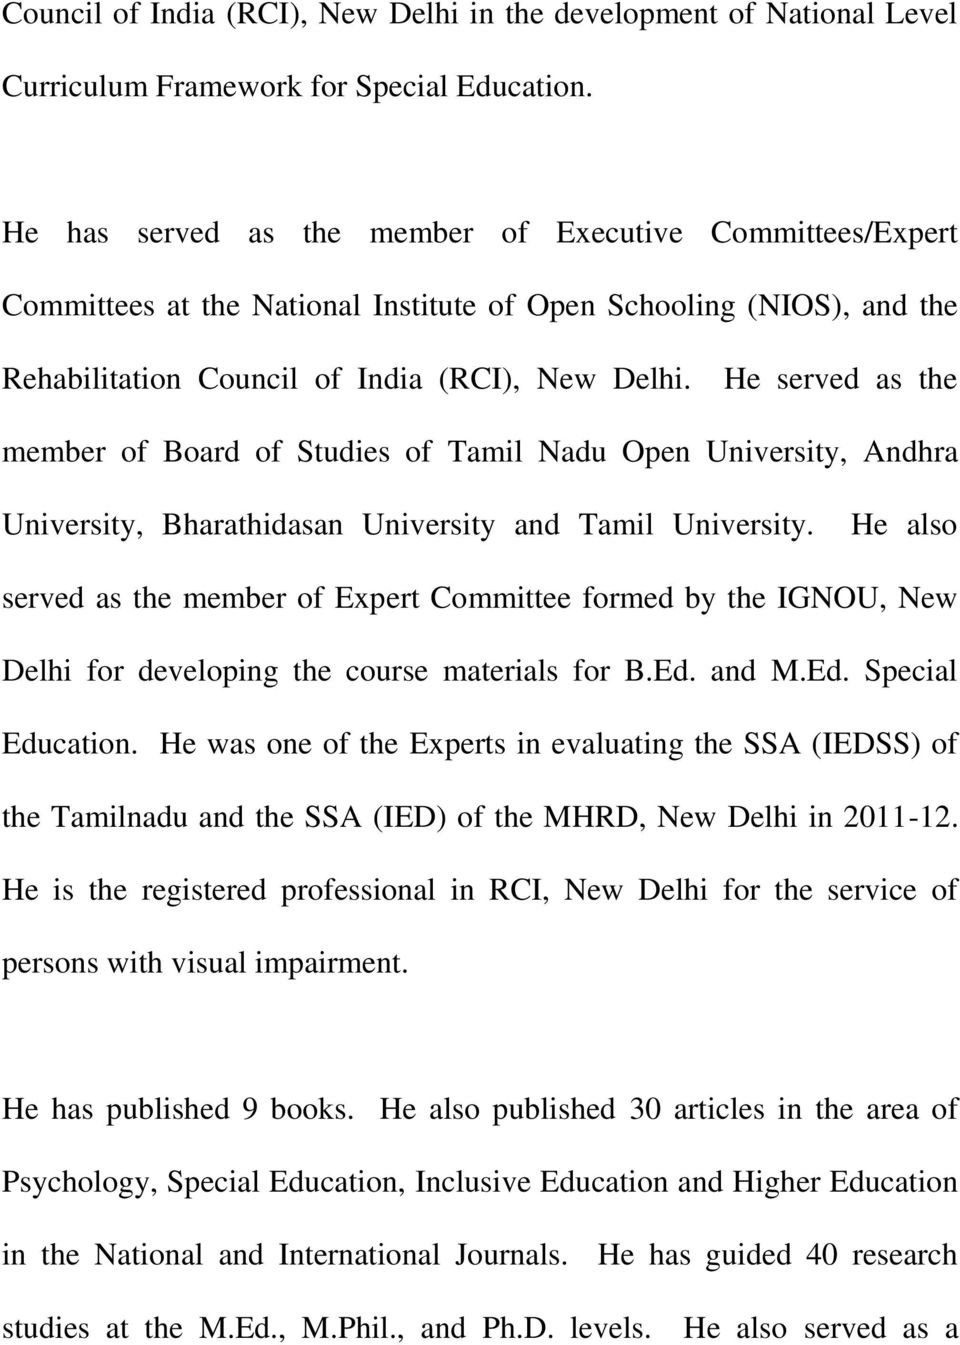 He served as the member of Board of Studies of Tamil Nadu Open University, Andhra University, Bharathidasan University and Tamil University.